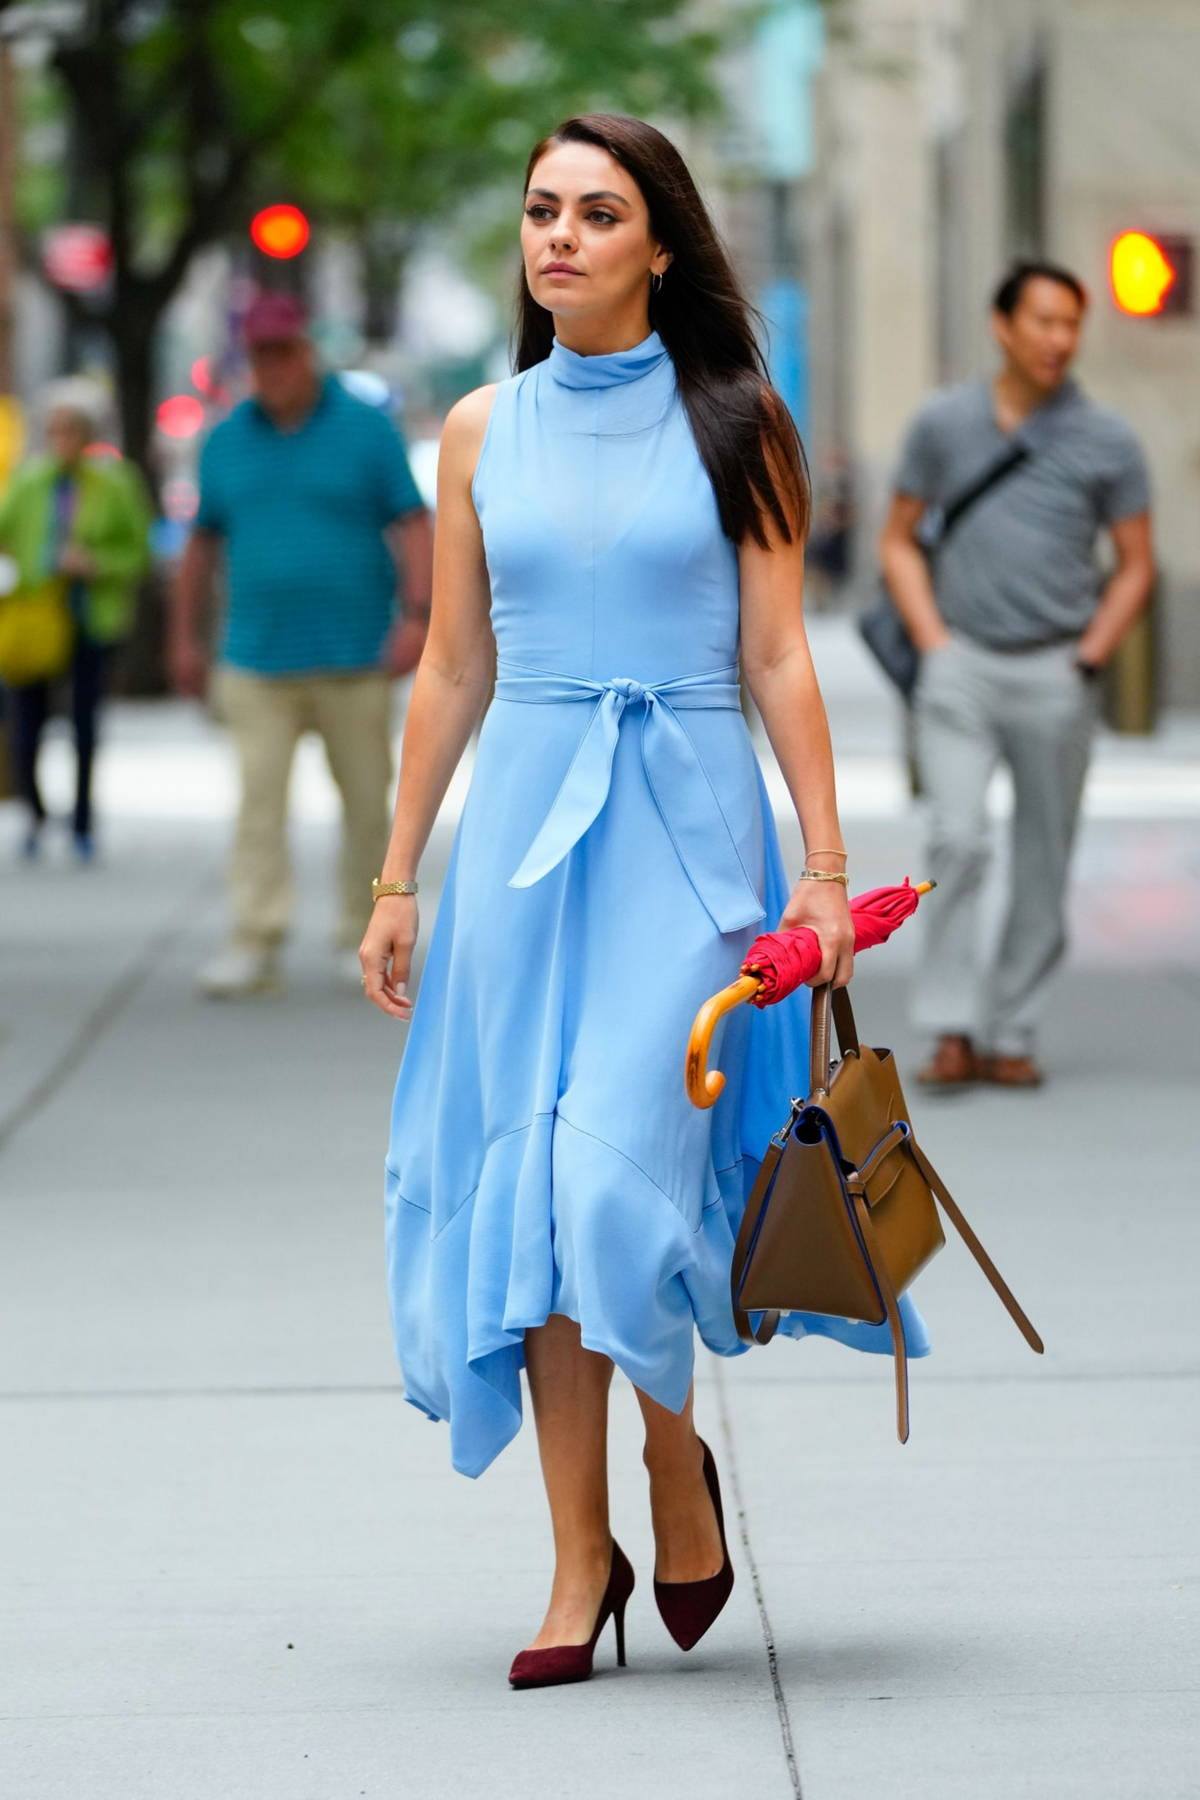 Mila Kunis looks lovely in a baby blue dress while filming 'The Luckiest Girl Alive' in New York City